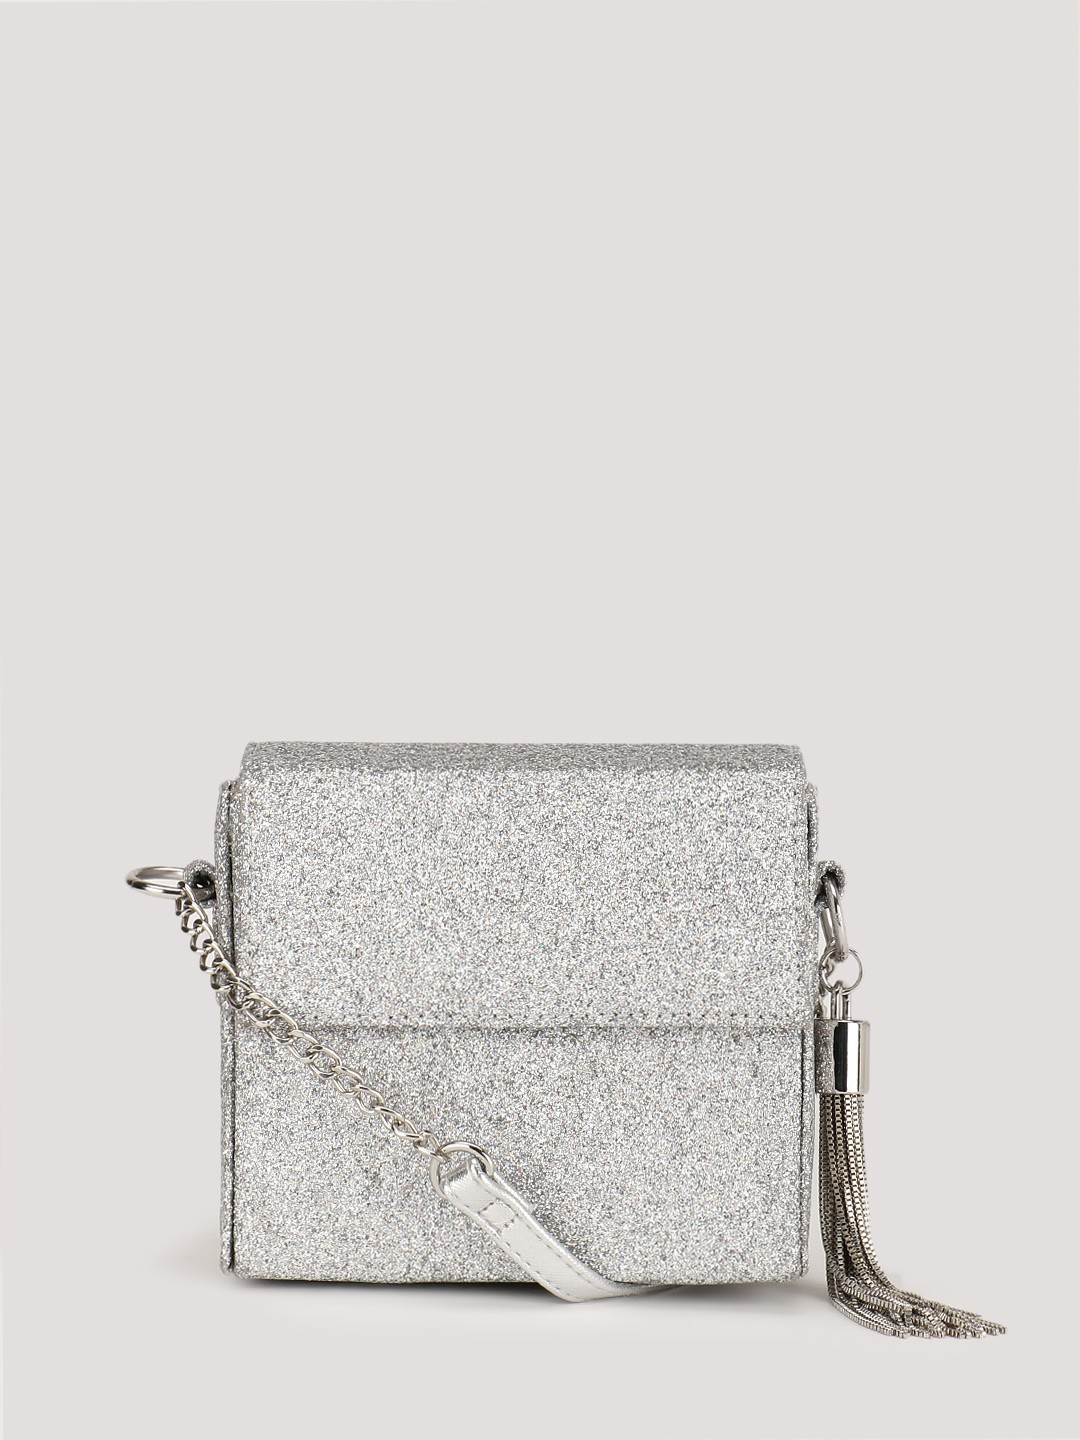 Buy NEW LOOK Glitter Travolta Sling Bag For Women - Women's Silver ...